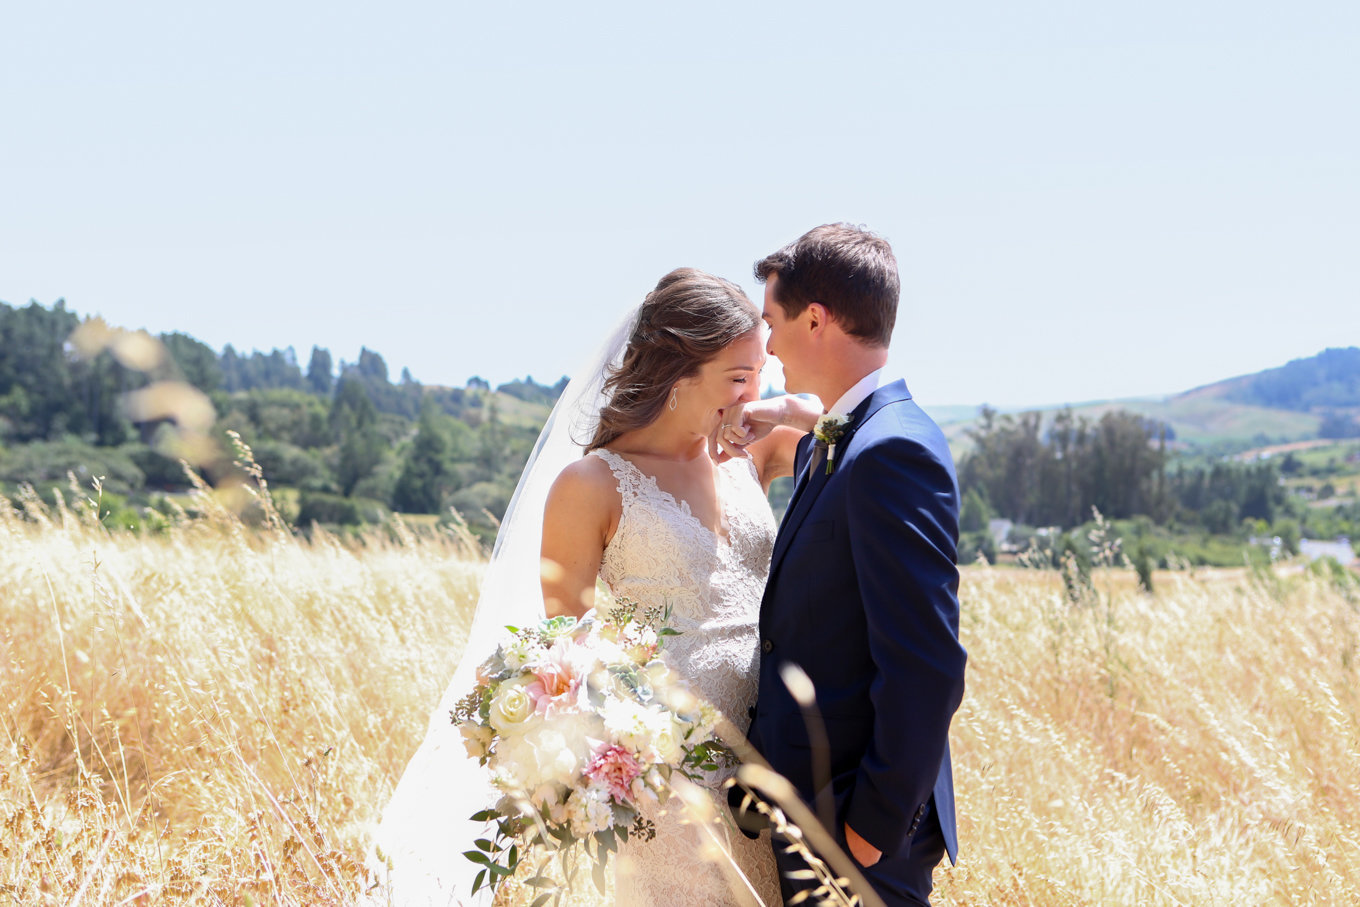 First look at wedding in Northern California, bride and groom in natural light